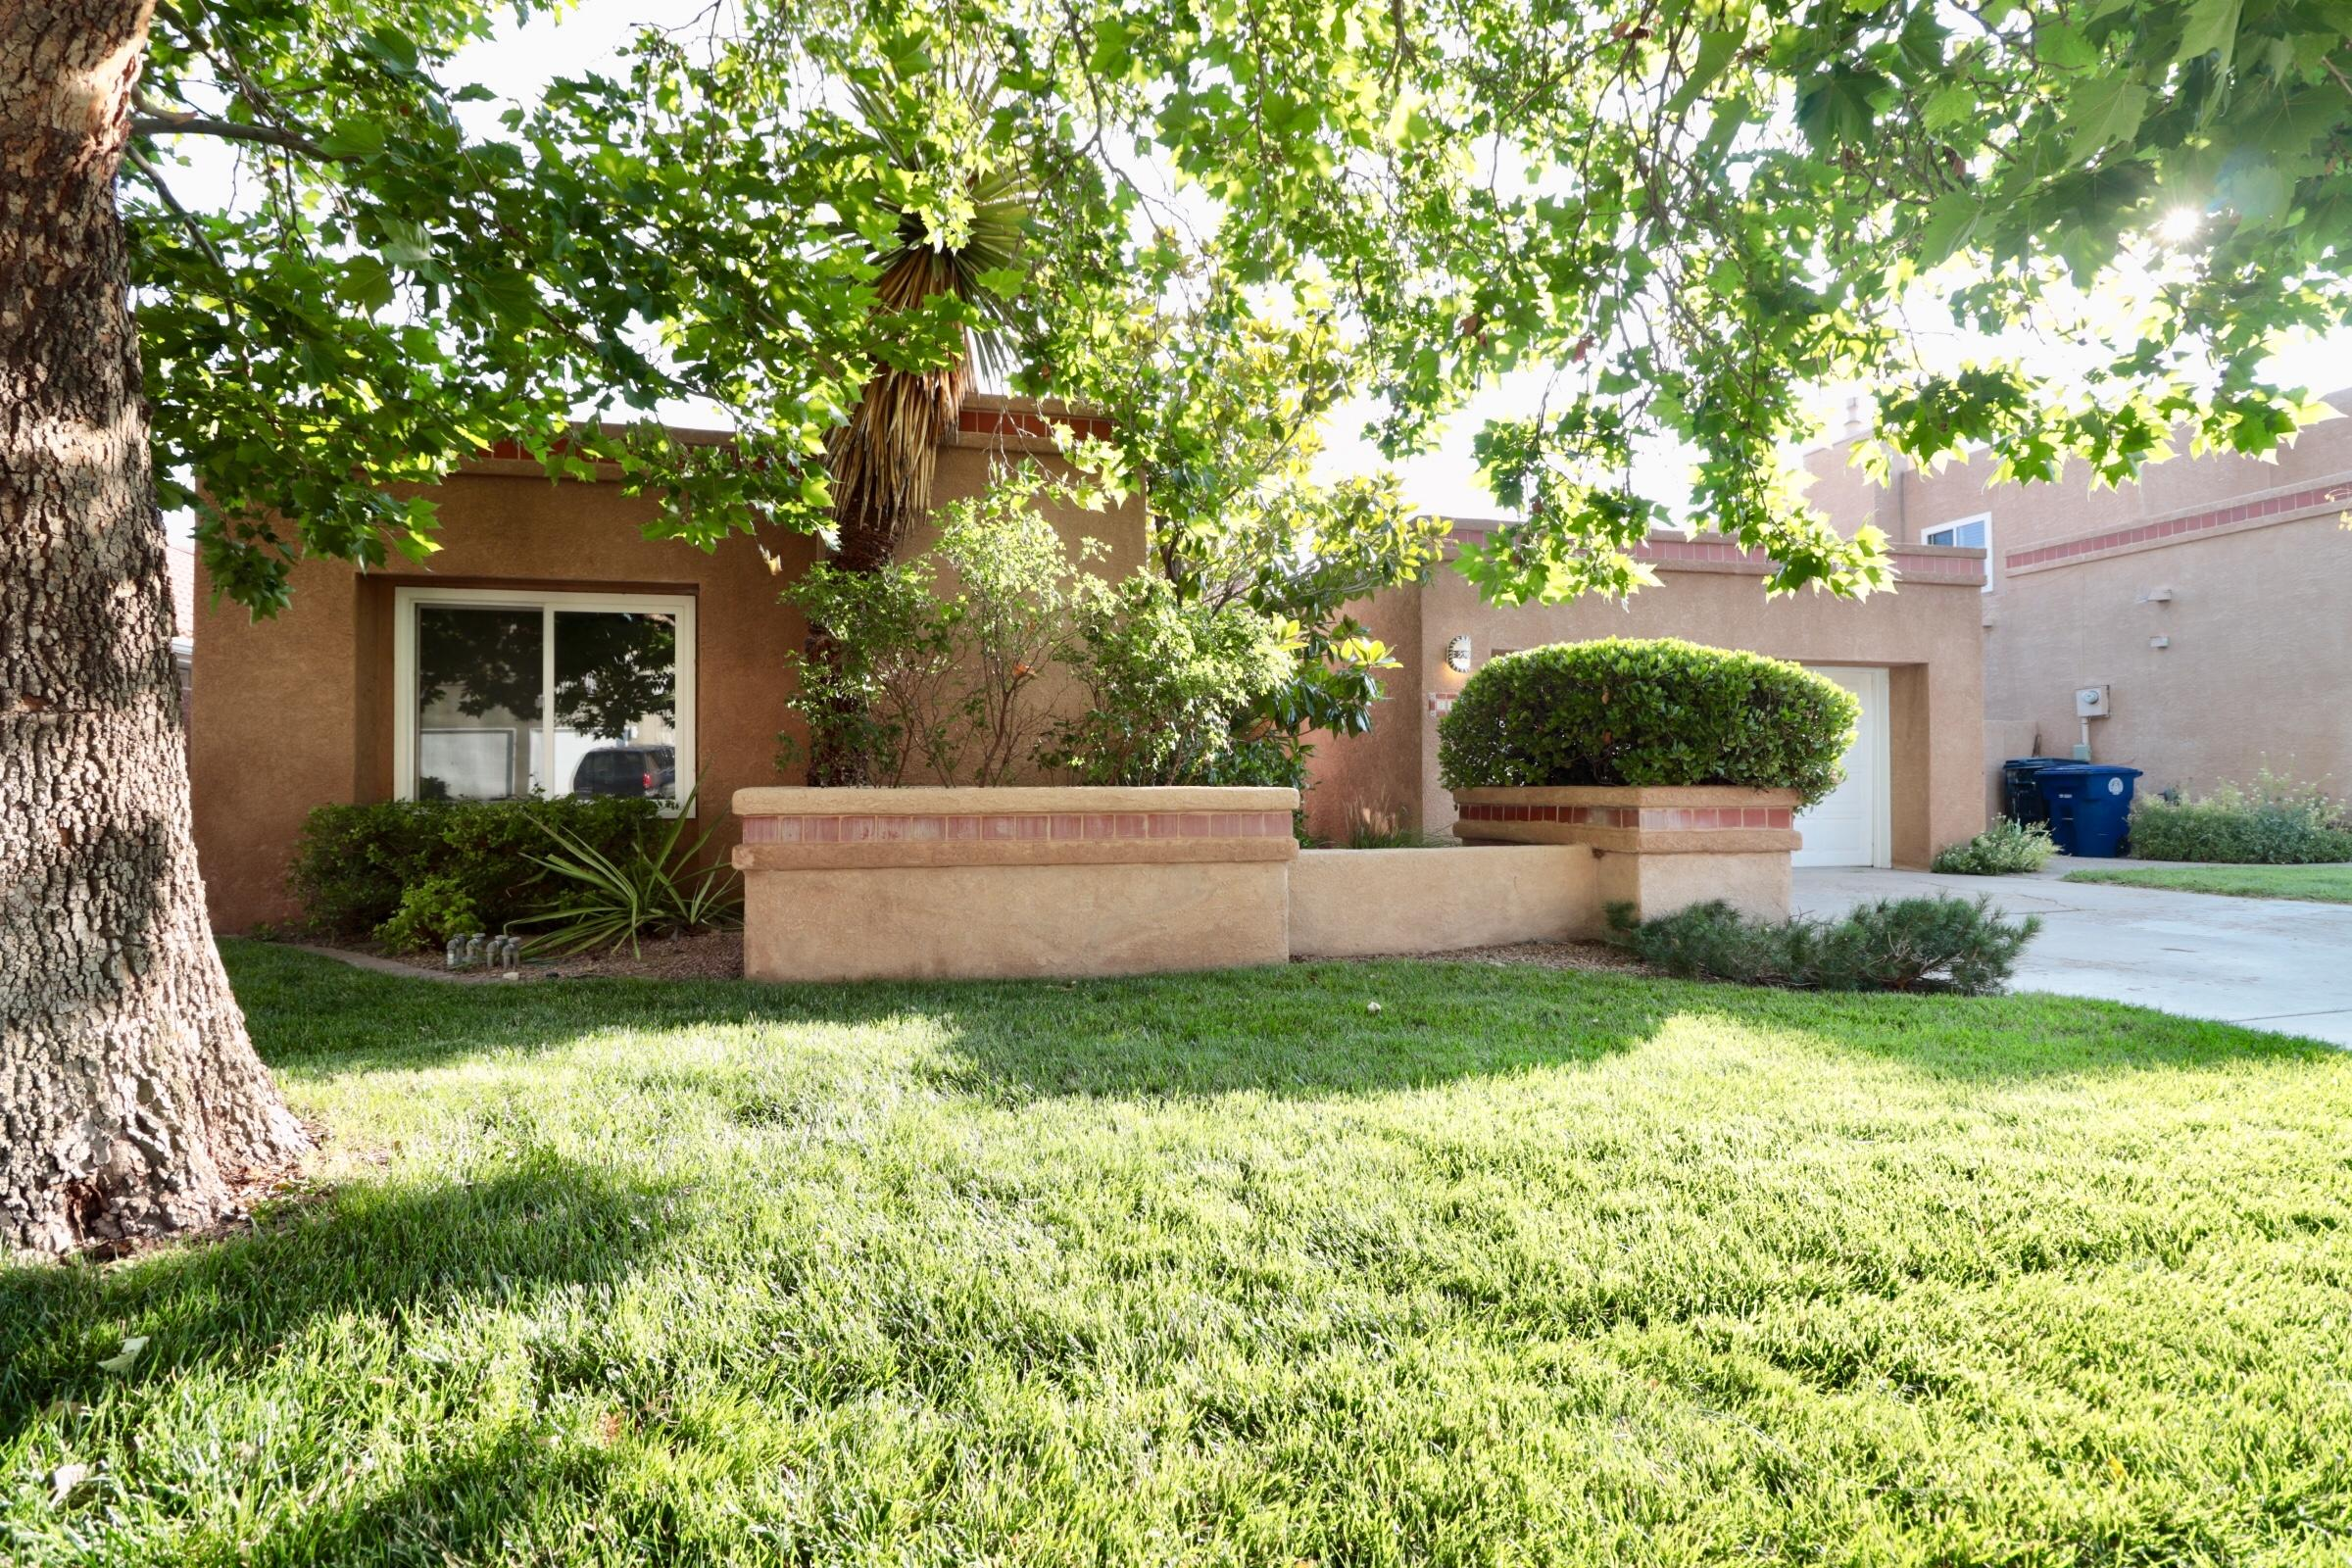 Phenomenal location! Beautiful, light and bright home situated in a mature neighborhood tucked into a cul-de-sac! This beautiful home offers  refrigerated air, 3 bedrooms, 2 full bathrooms, and a lovely updated kitchen with newer appliances, granite counters, built in hutch and lots of storage. The back yard has mature landscaping and an outdoor fireplace/pit area for everyone to enjoy. Carpet installation is still in progress, professional photos to follow by Aug 6th.